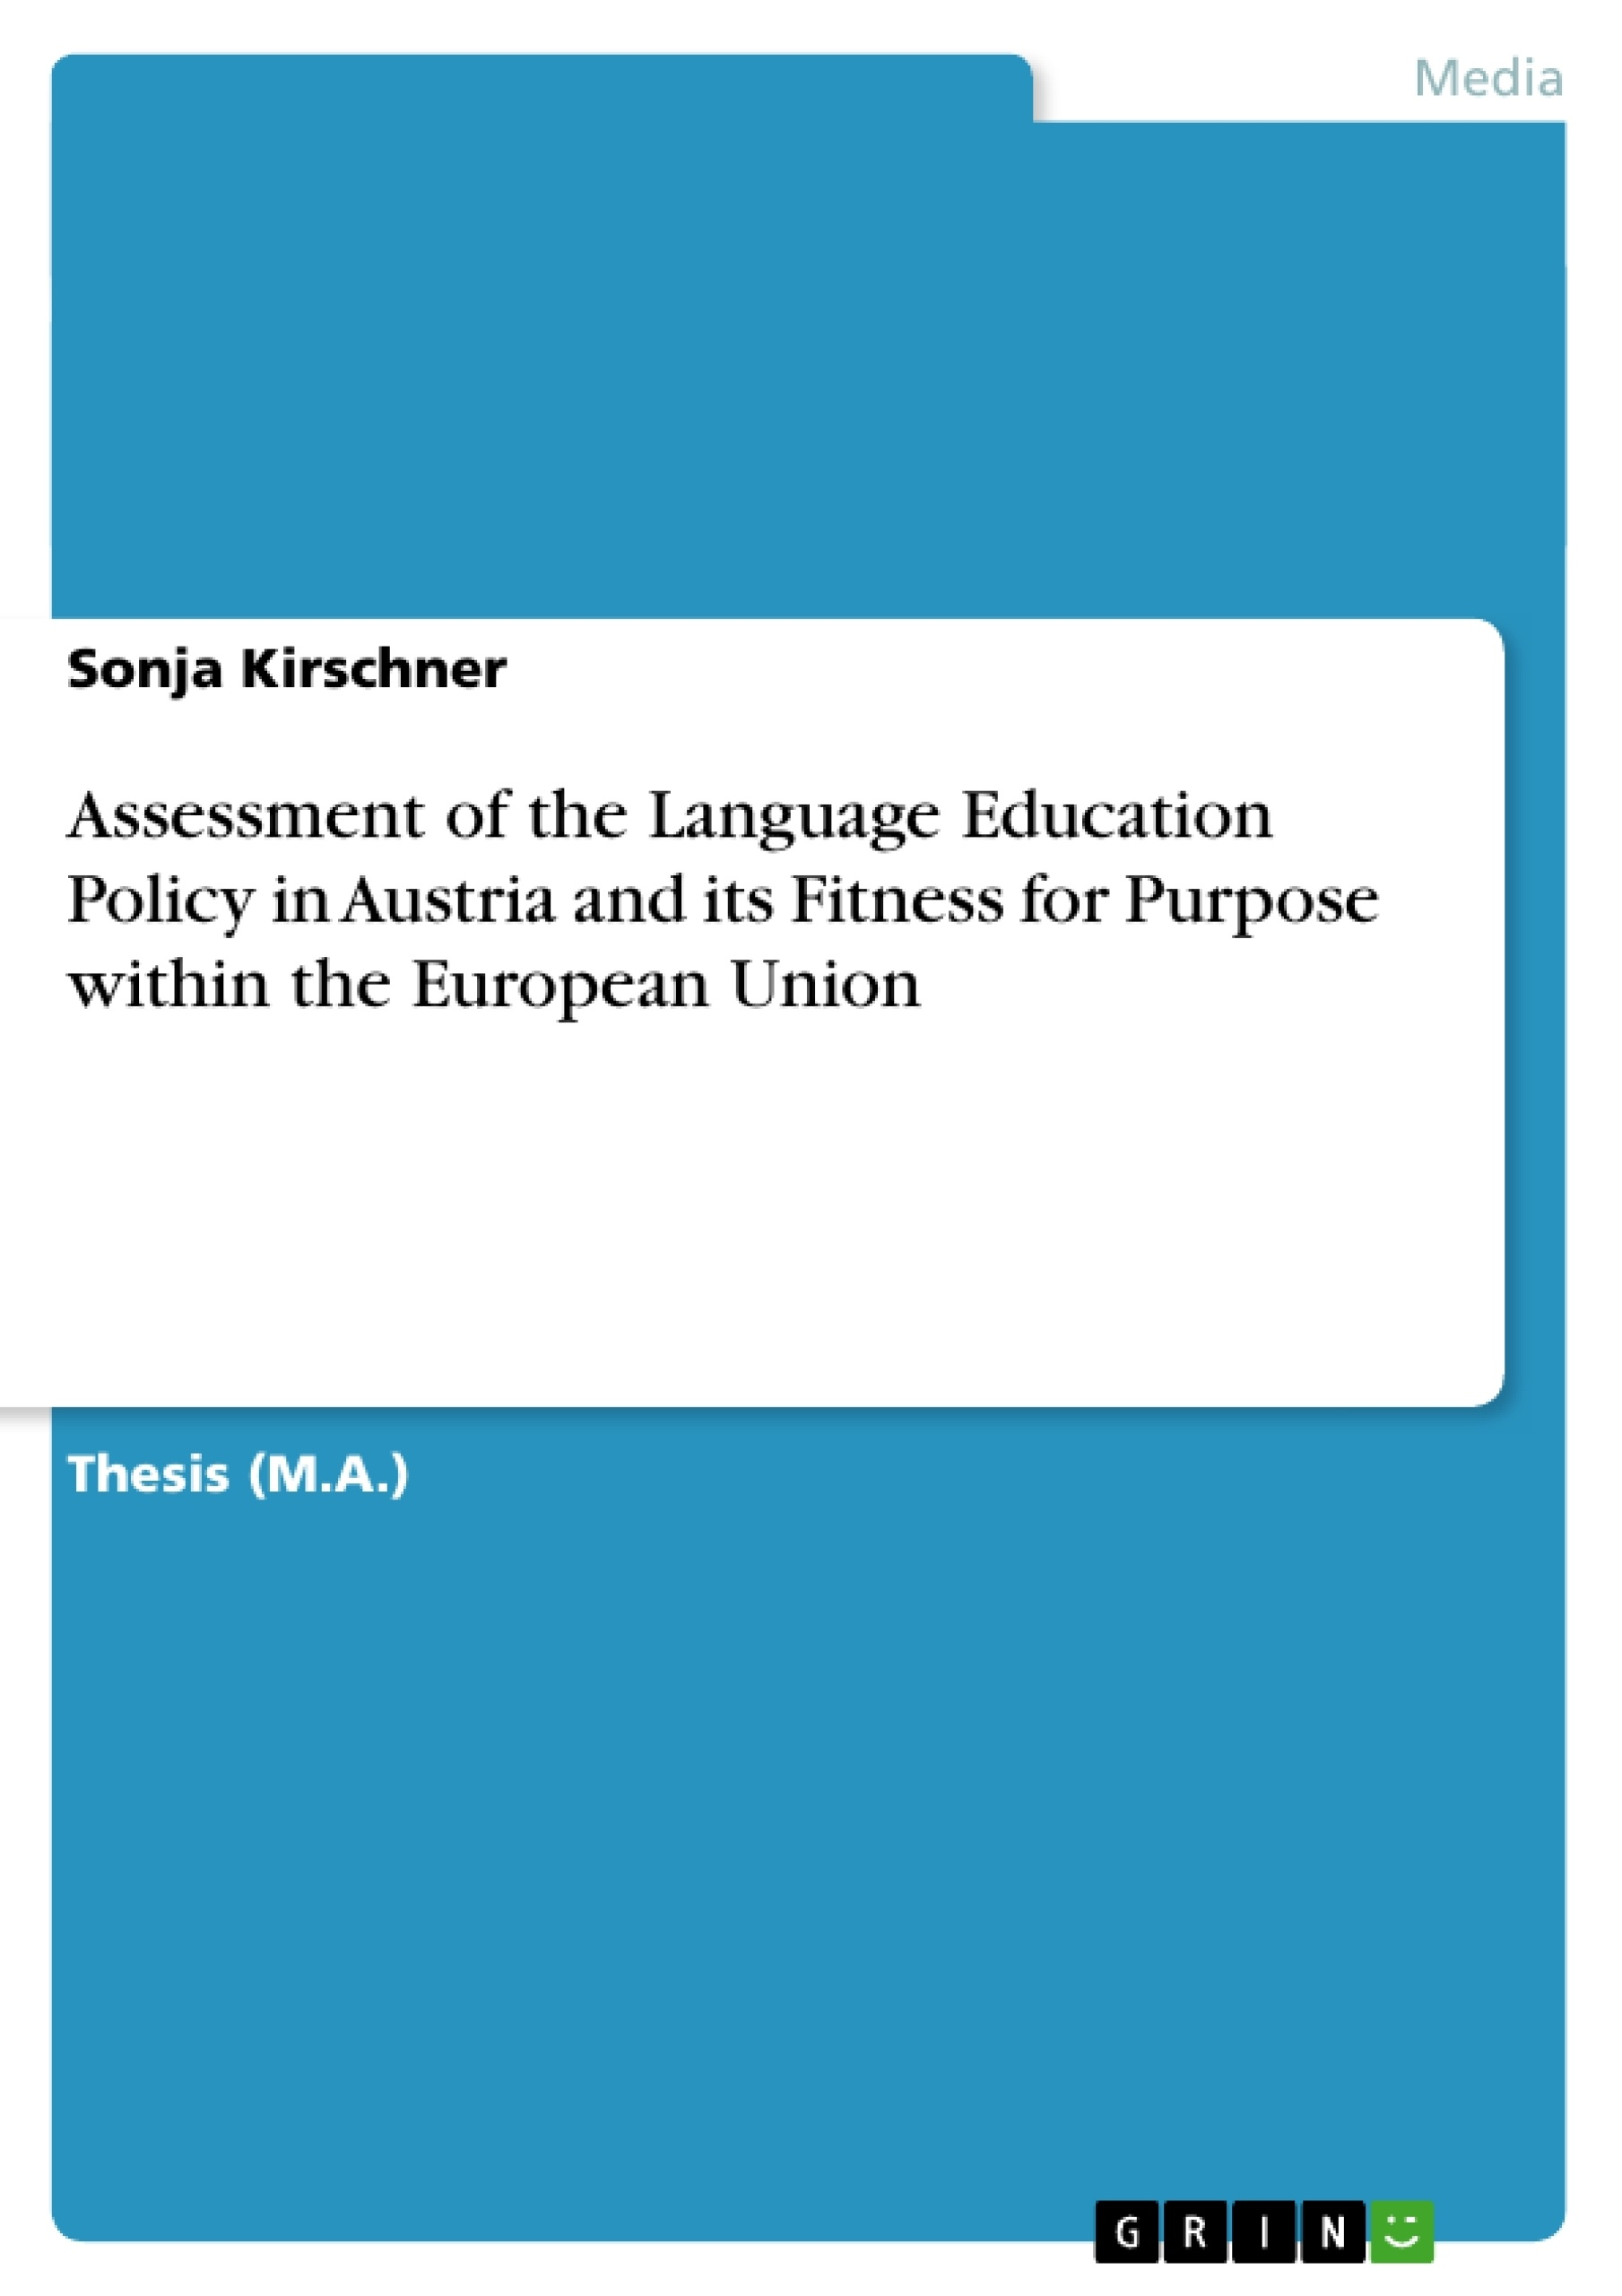 Title: Assessment of the Language Education Policy in Austria and its Fitness for Purpose within the European Union